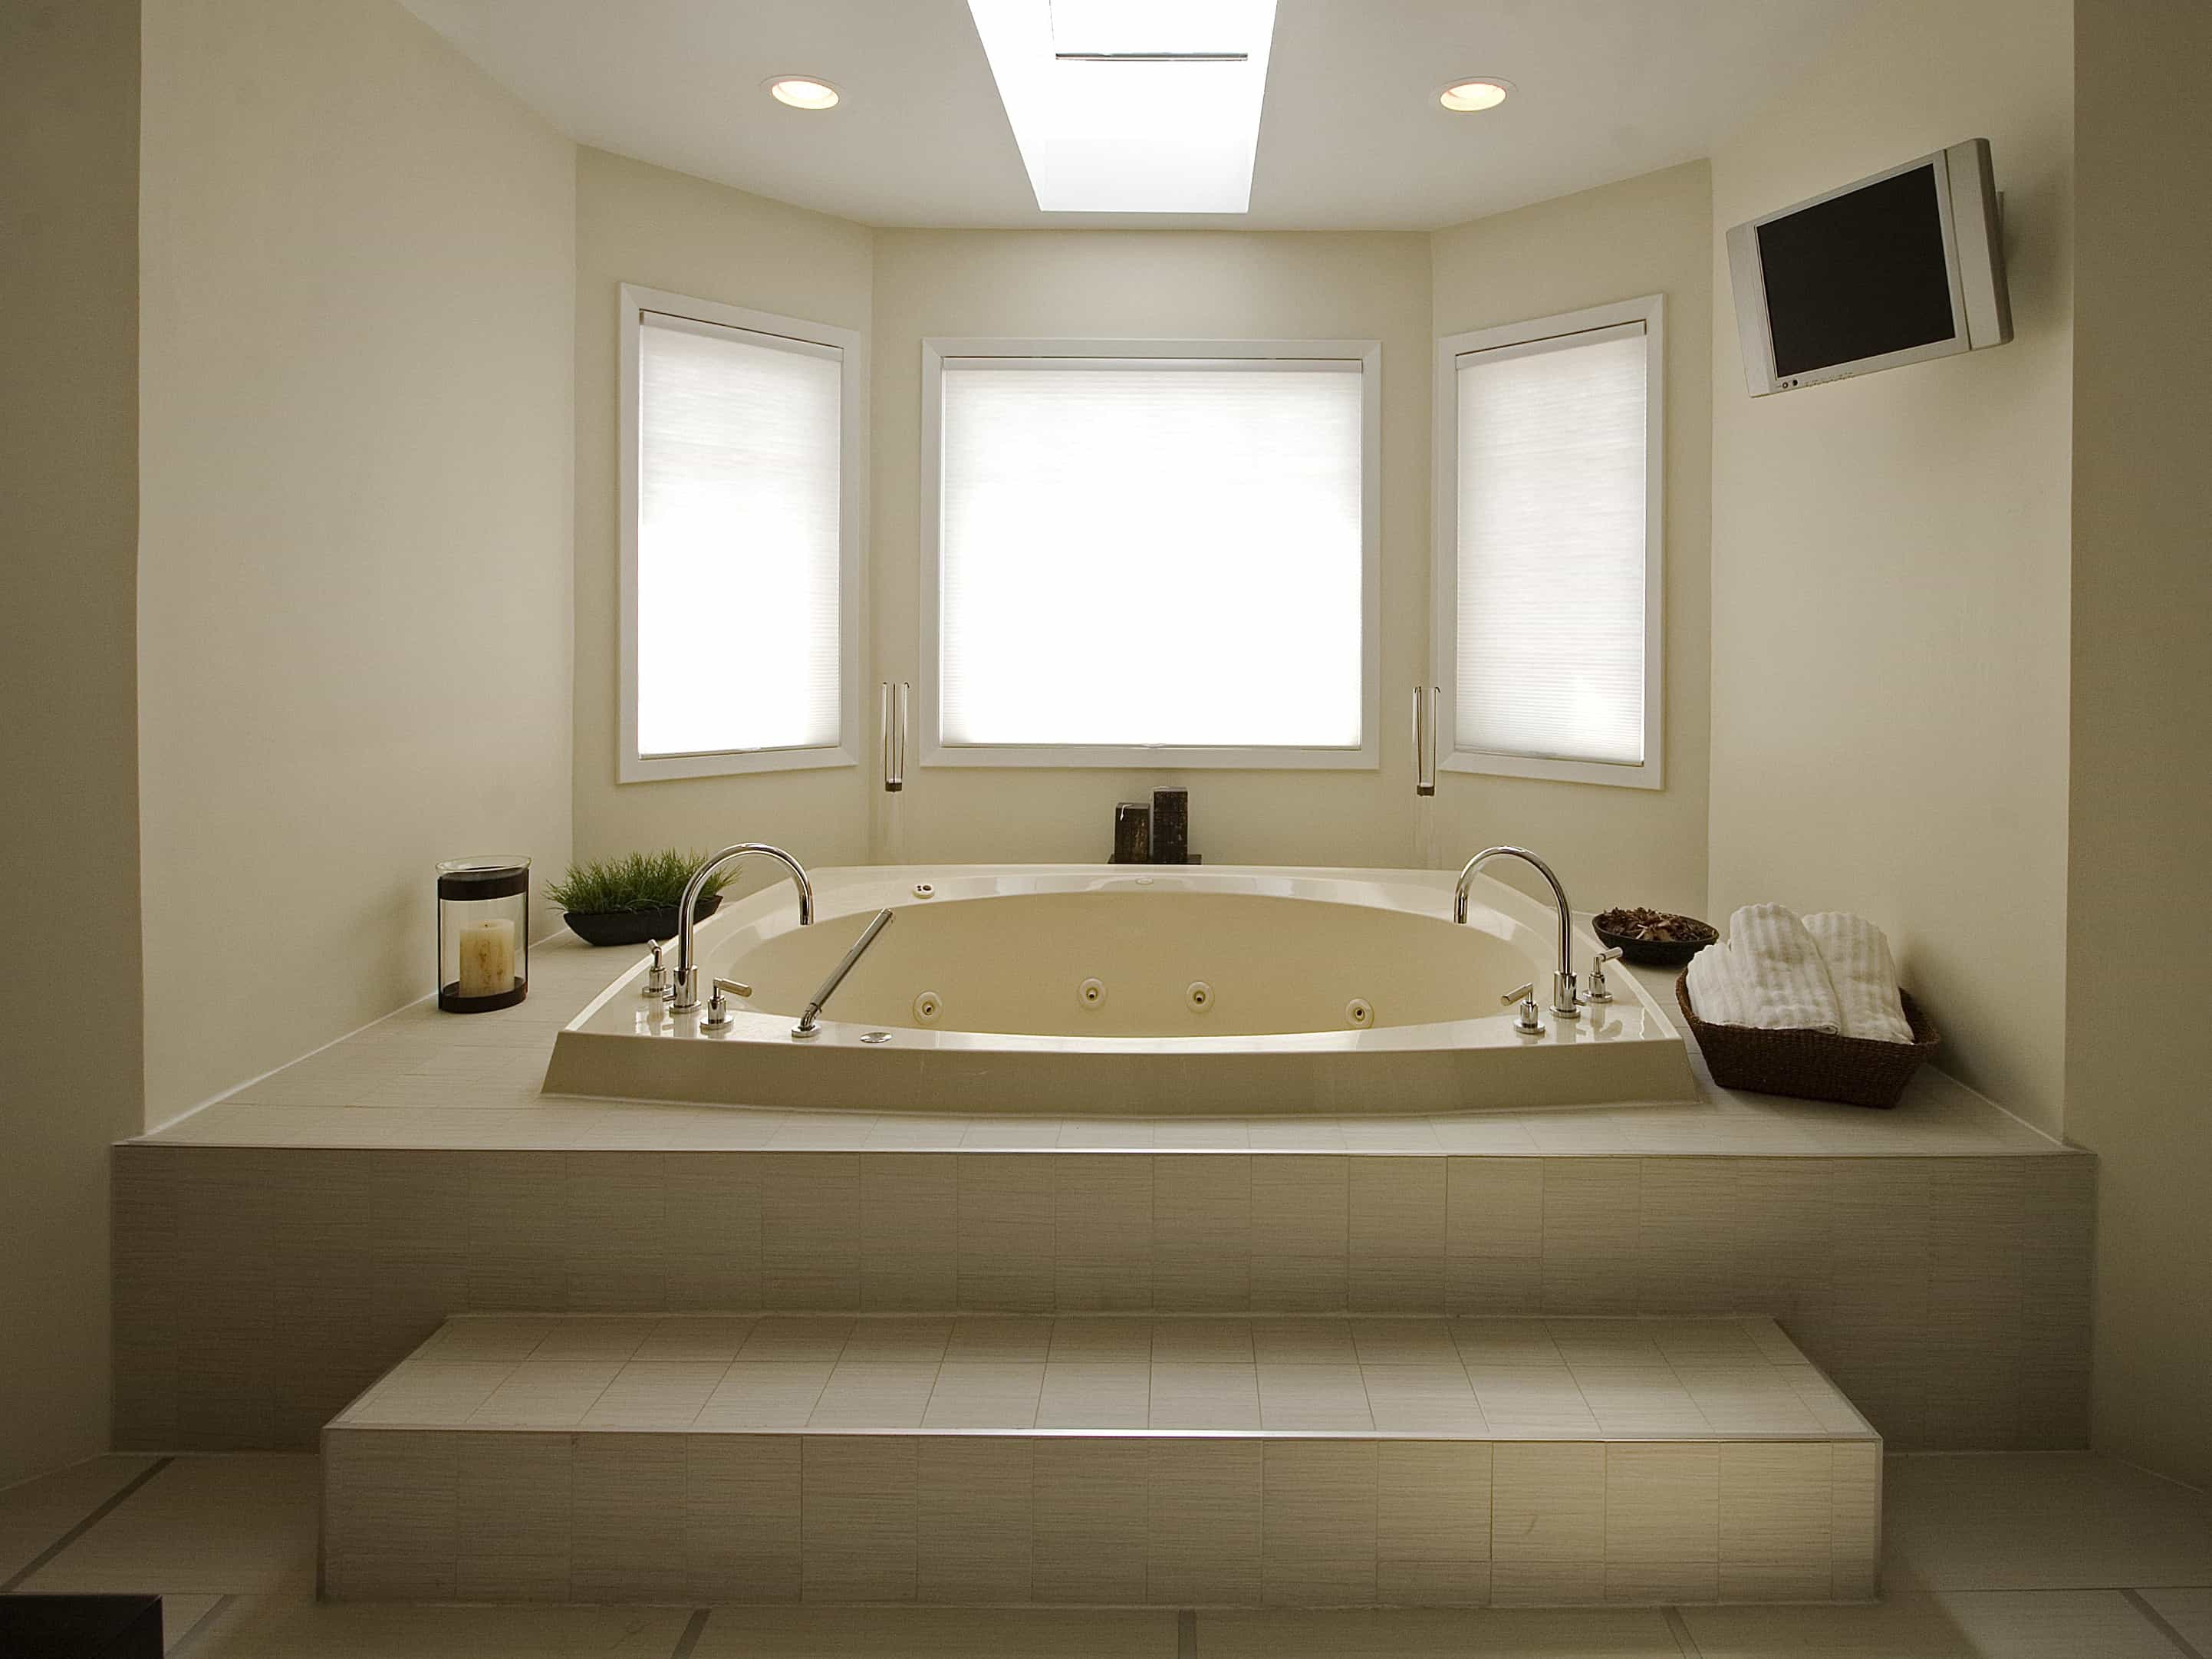 Whirlpool Bathtub In Stunning White Modern Bathroom (View 15 of 29)